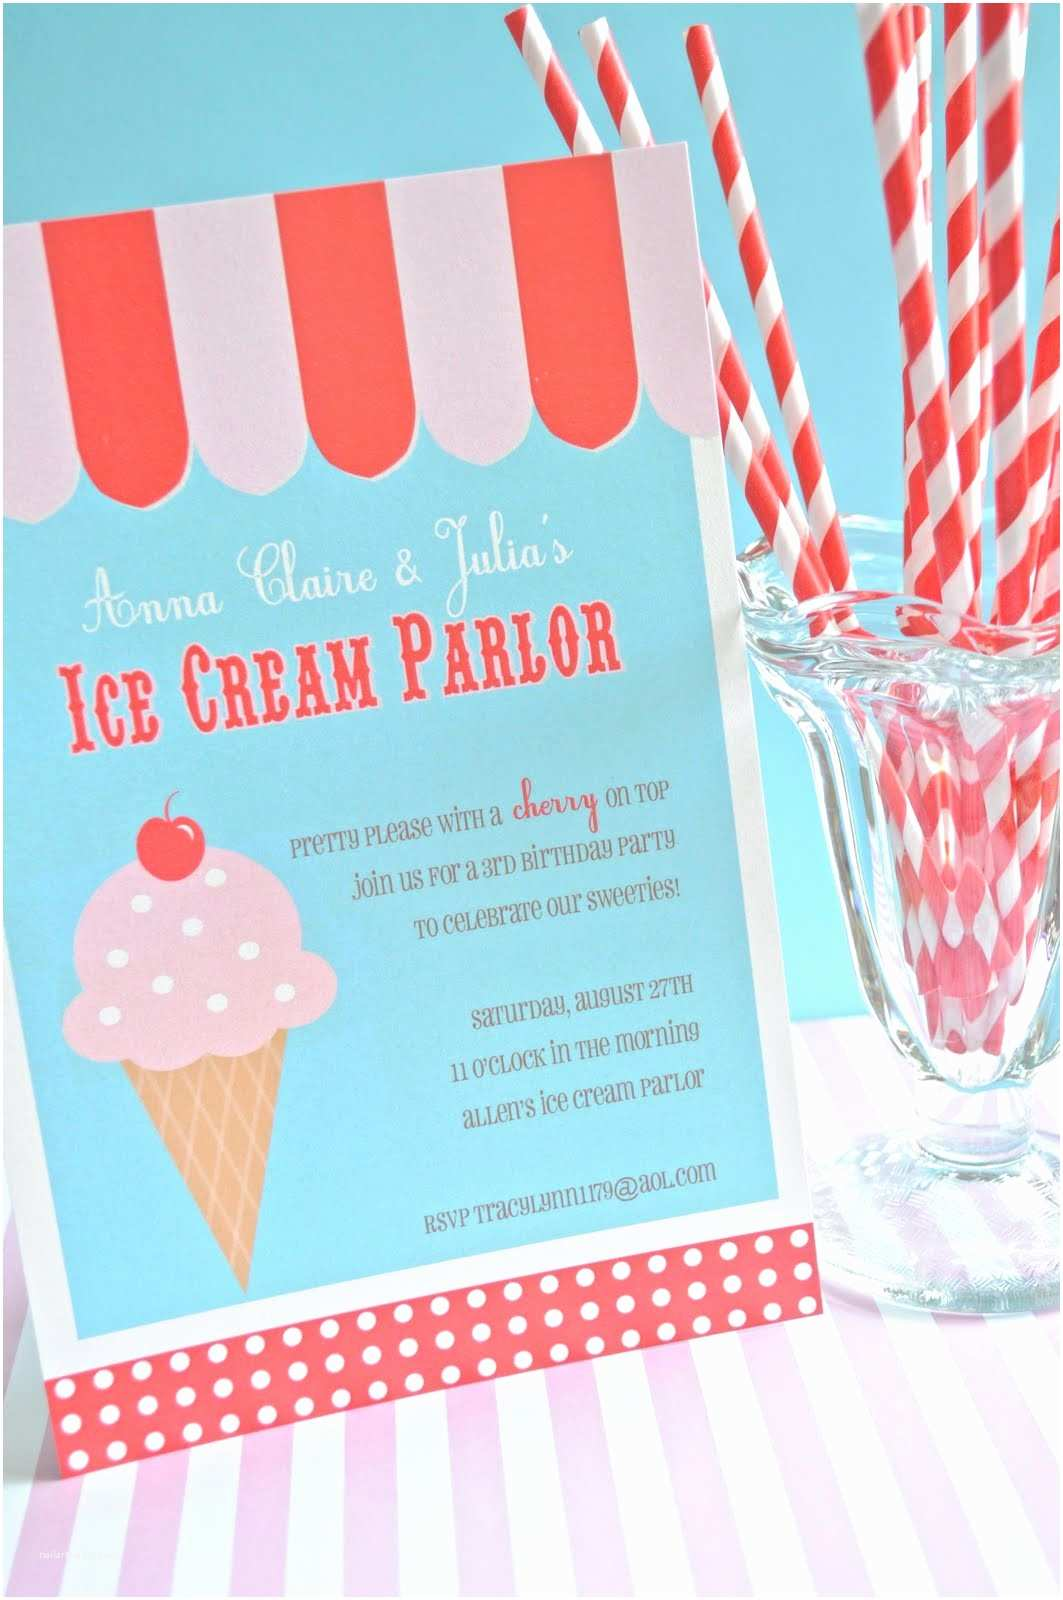 Ice Cream Birthday Party Invitations Ice Cream Parlor Party Invitations Sweet Peach Paperie